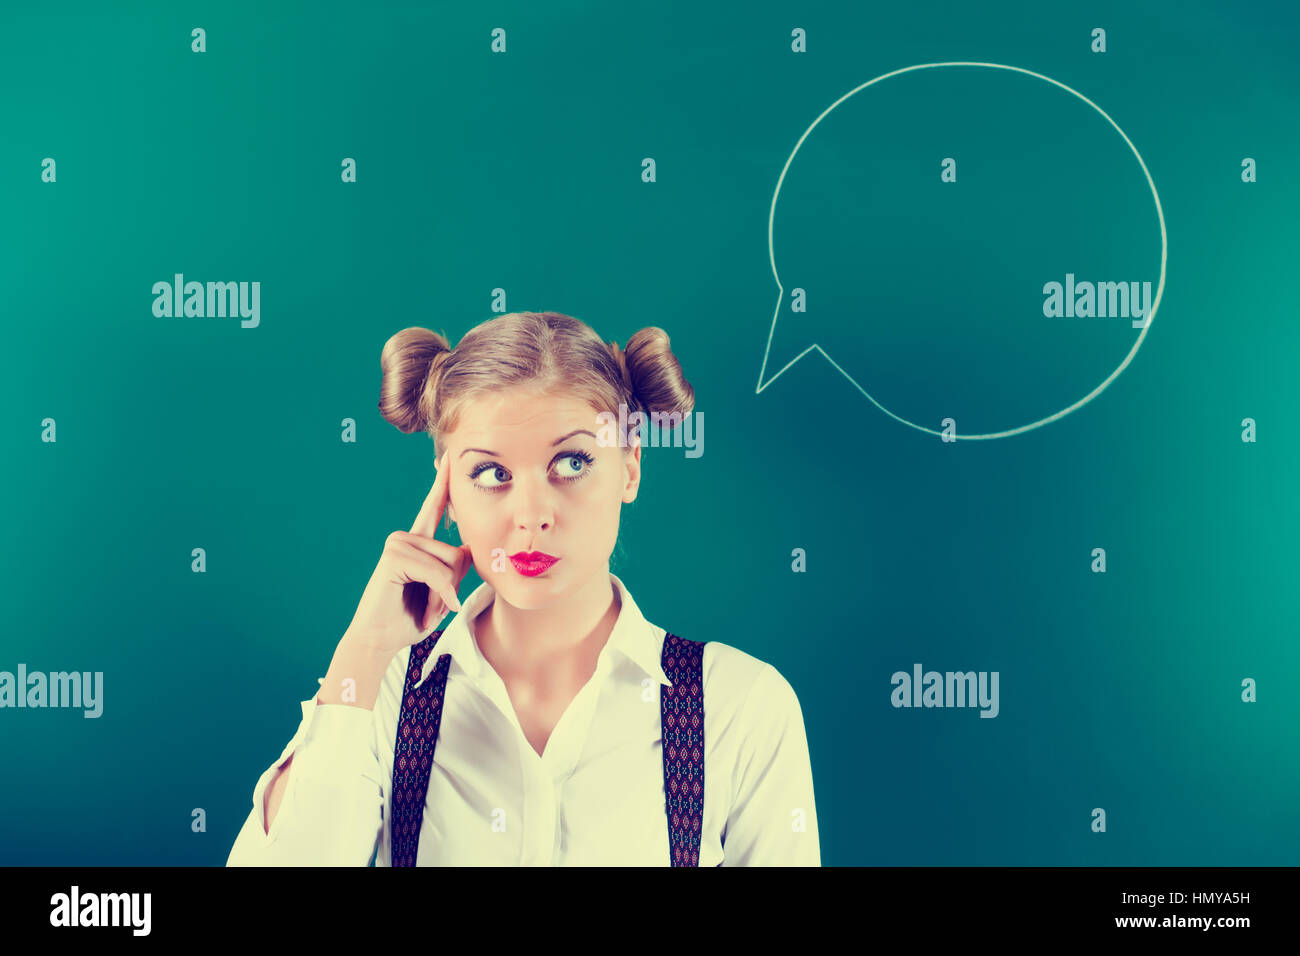 Think before you say something! - Stock Image